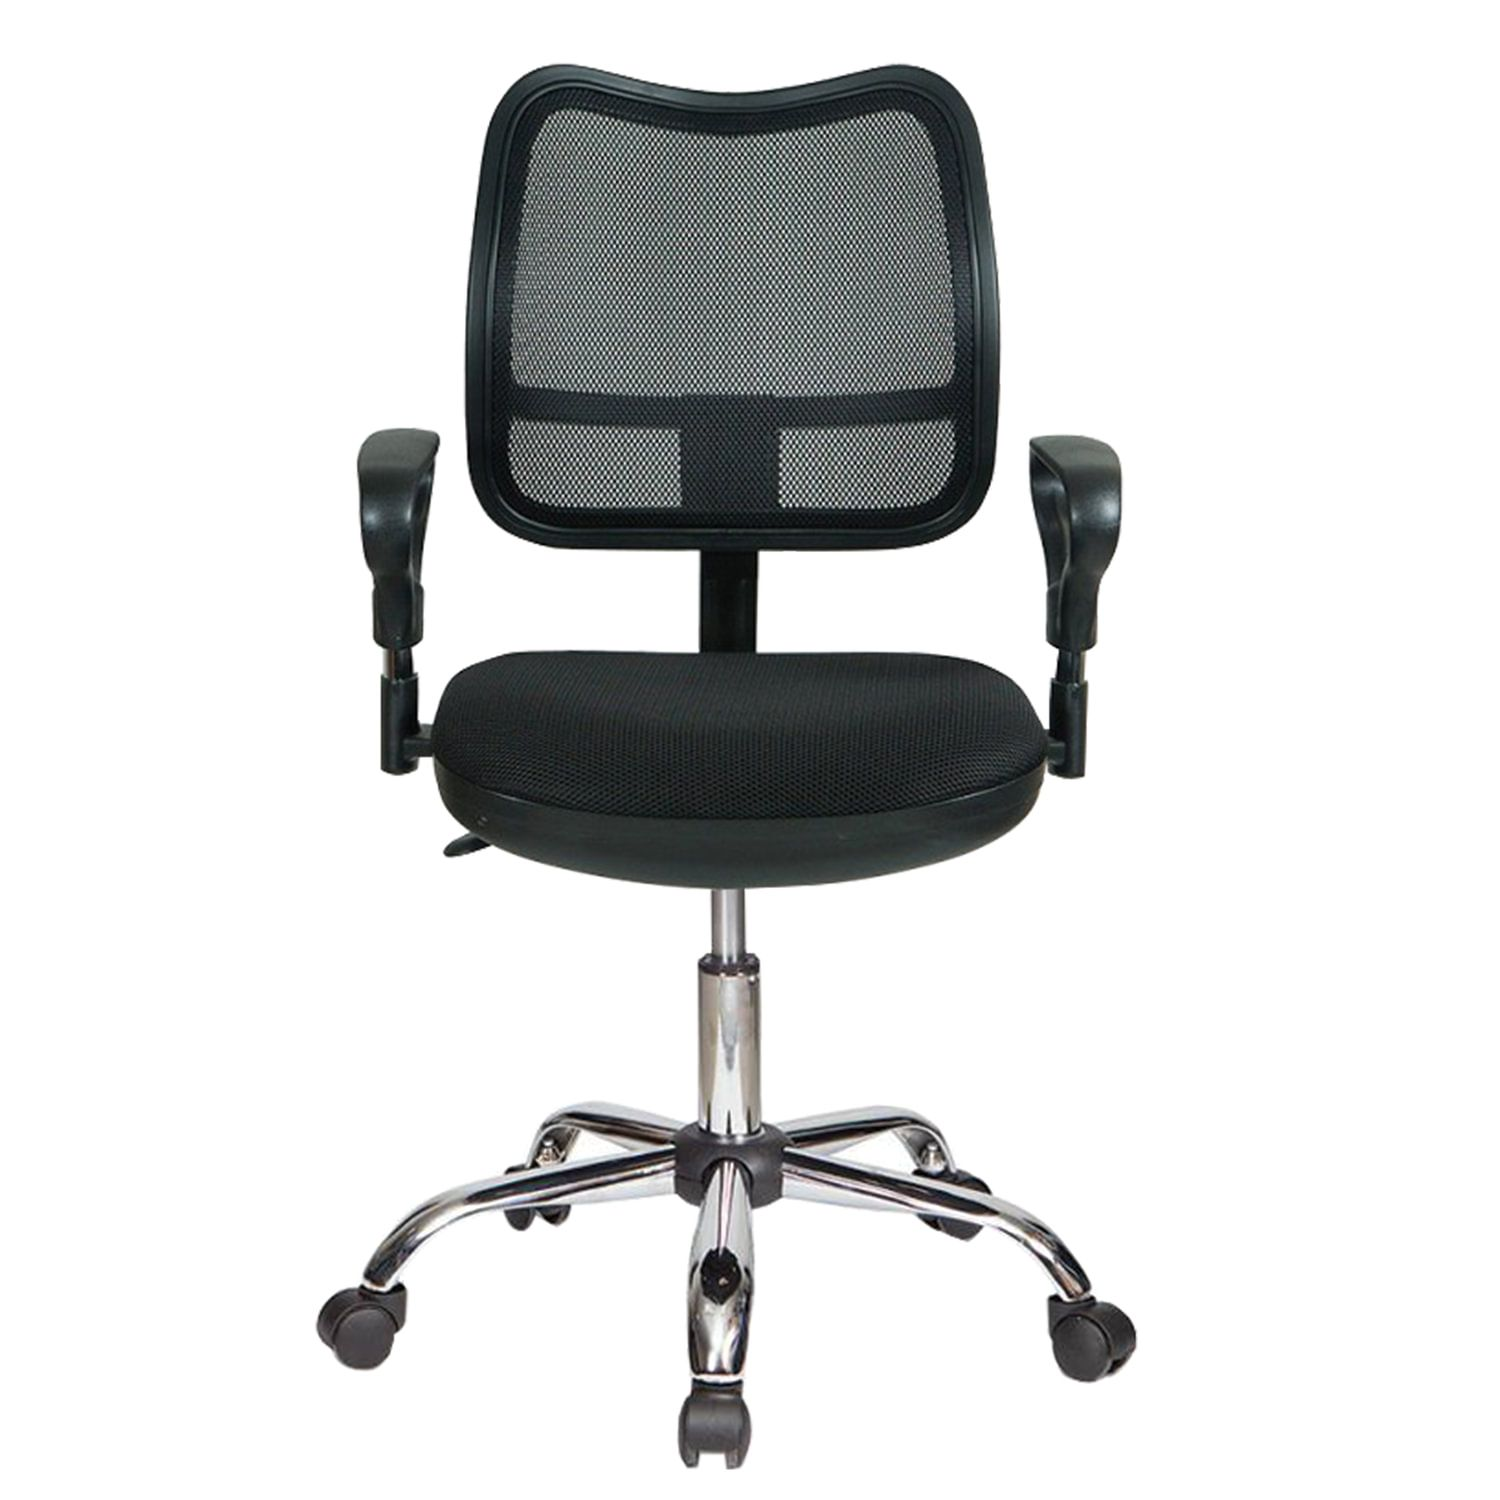 Armchair CH-799SL, with armrests, chrome, black